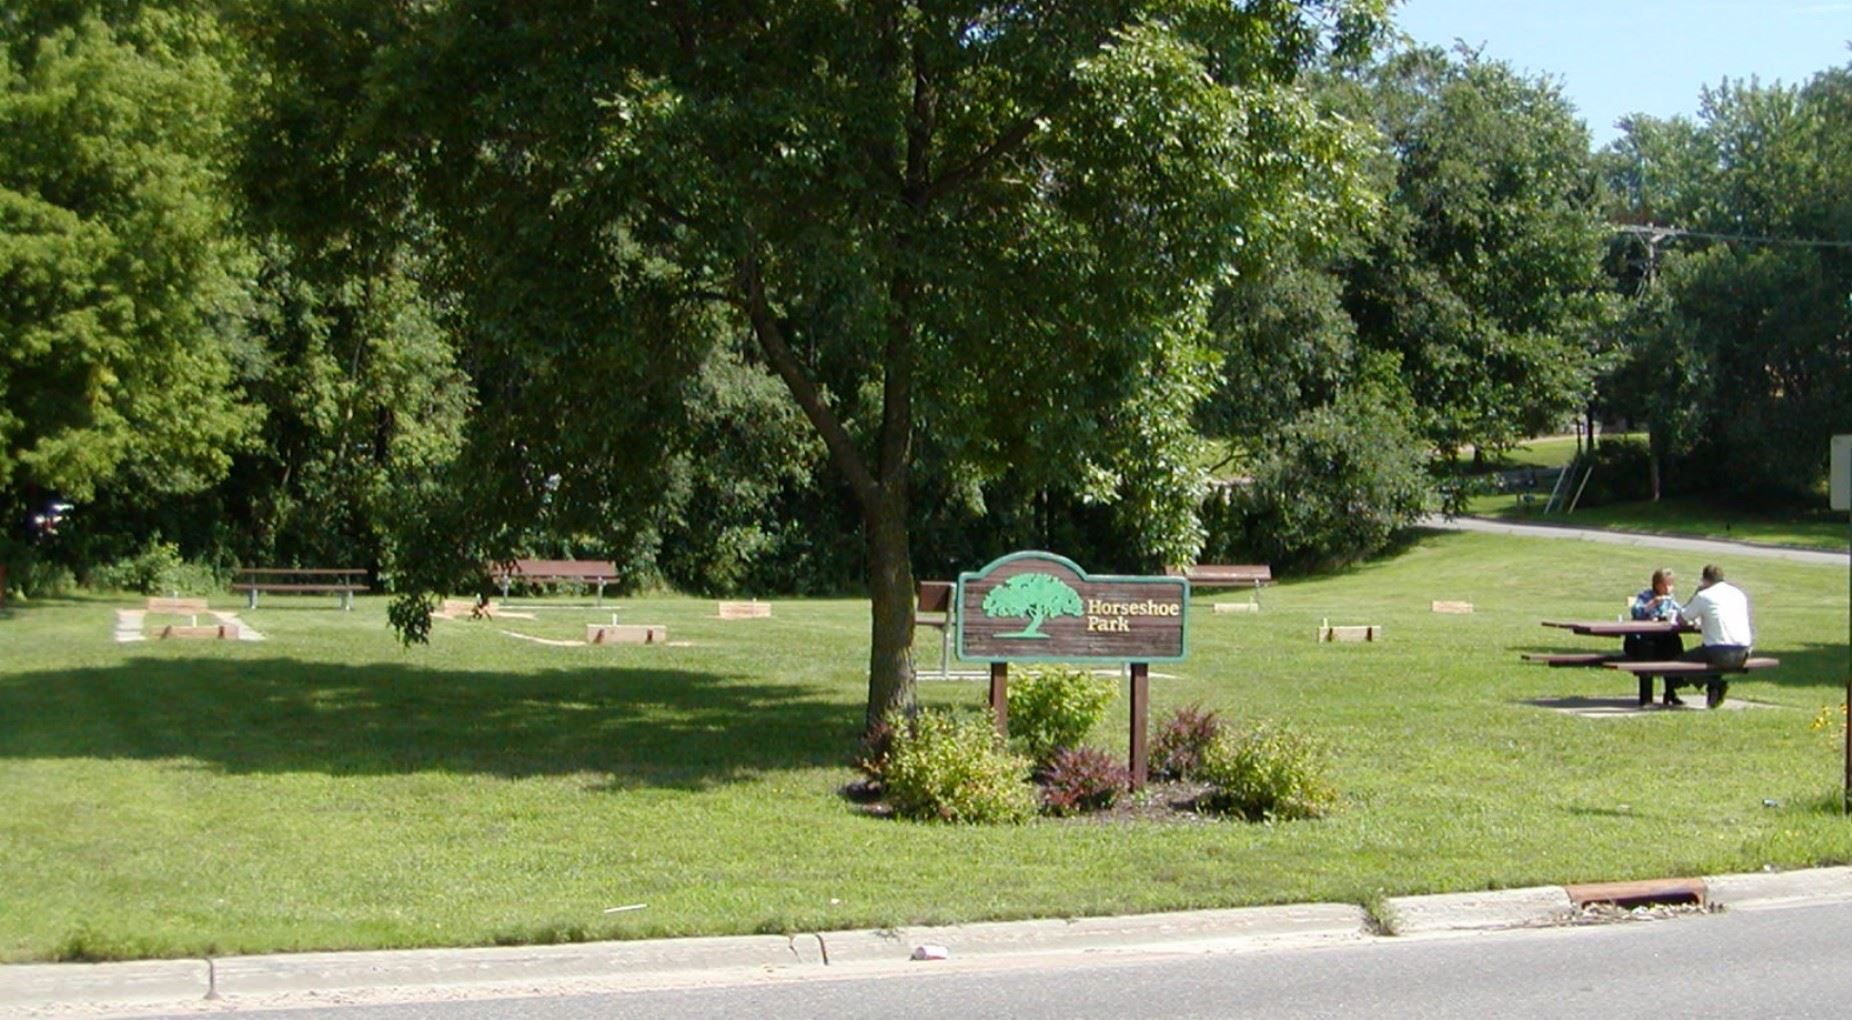 Image of Horseshoe Park Sign and Horseshoe Pits